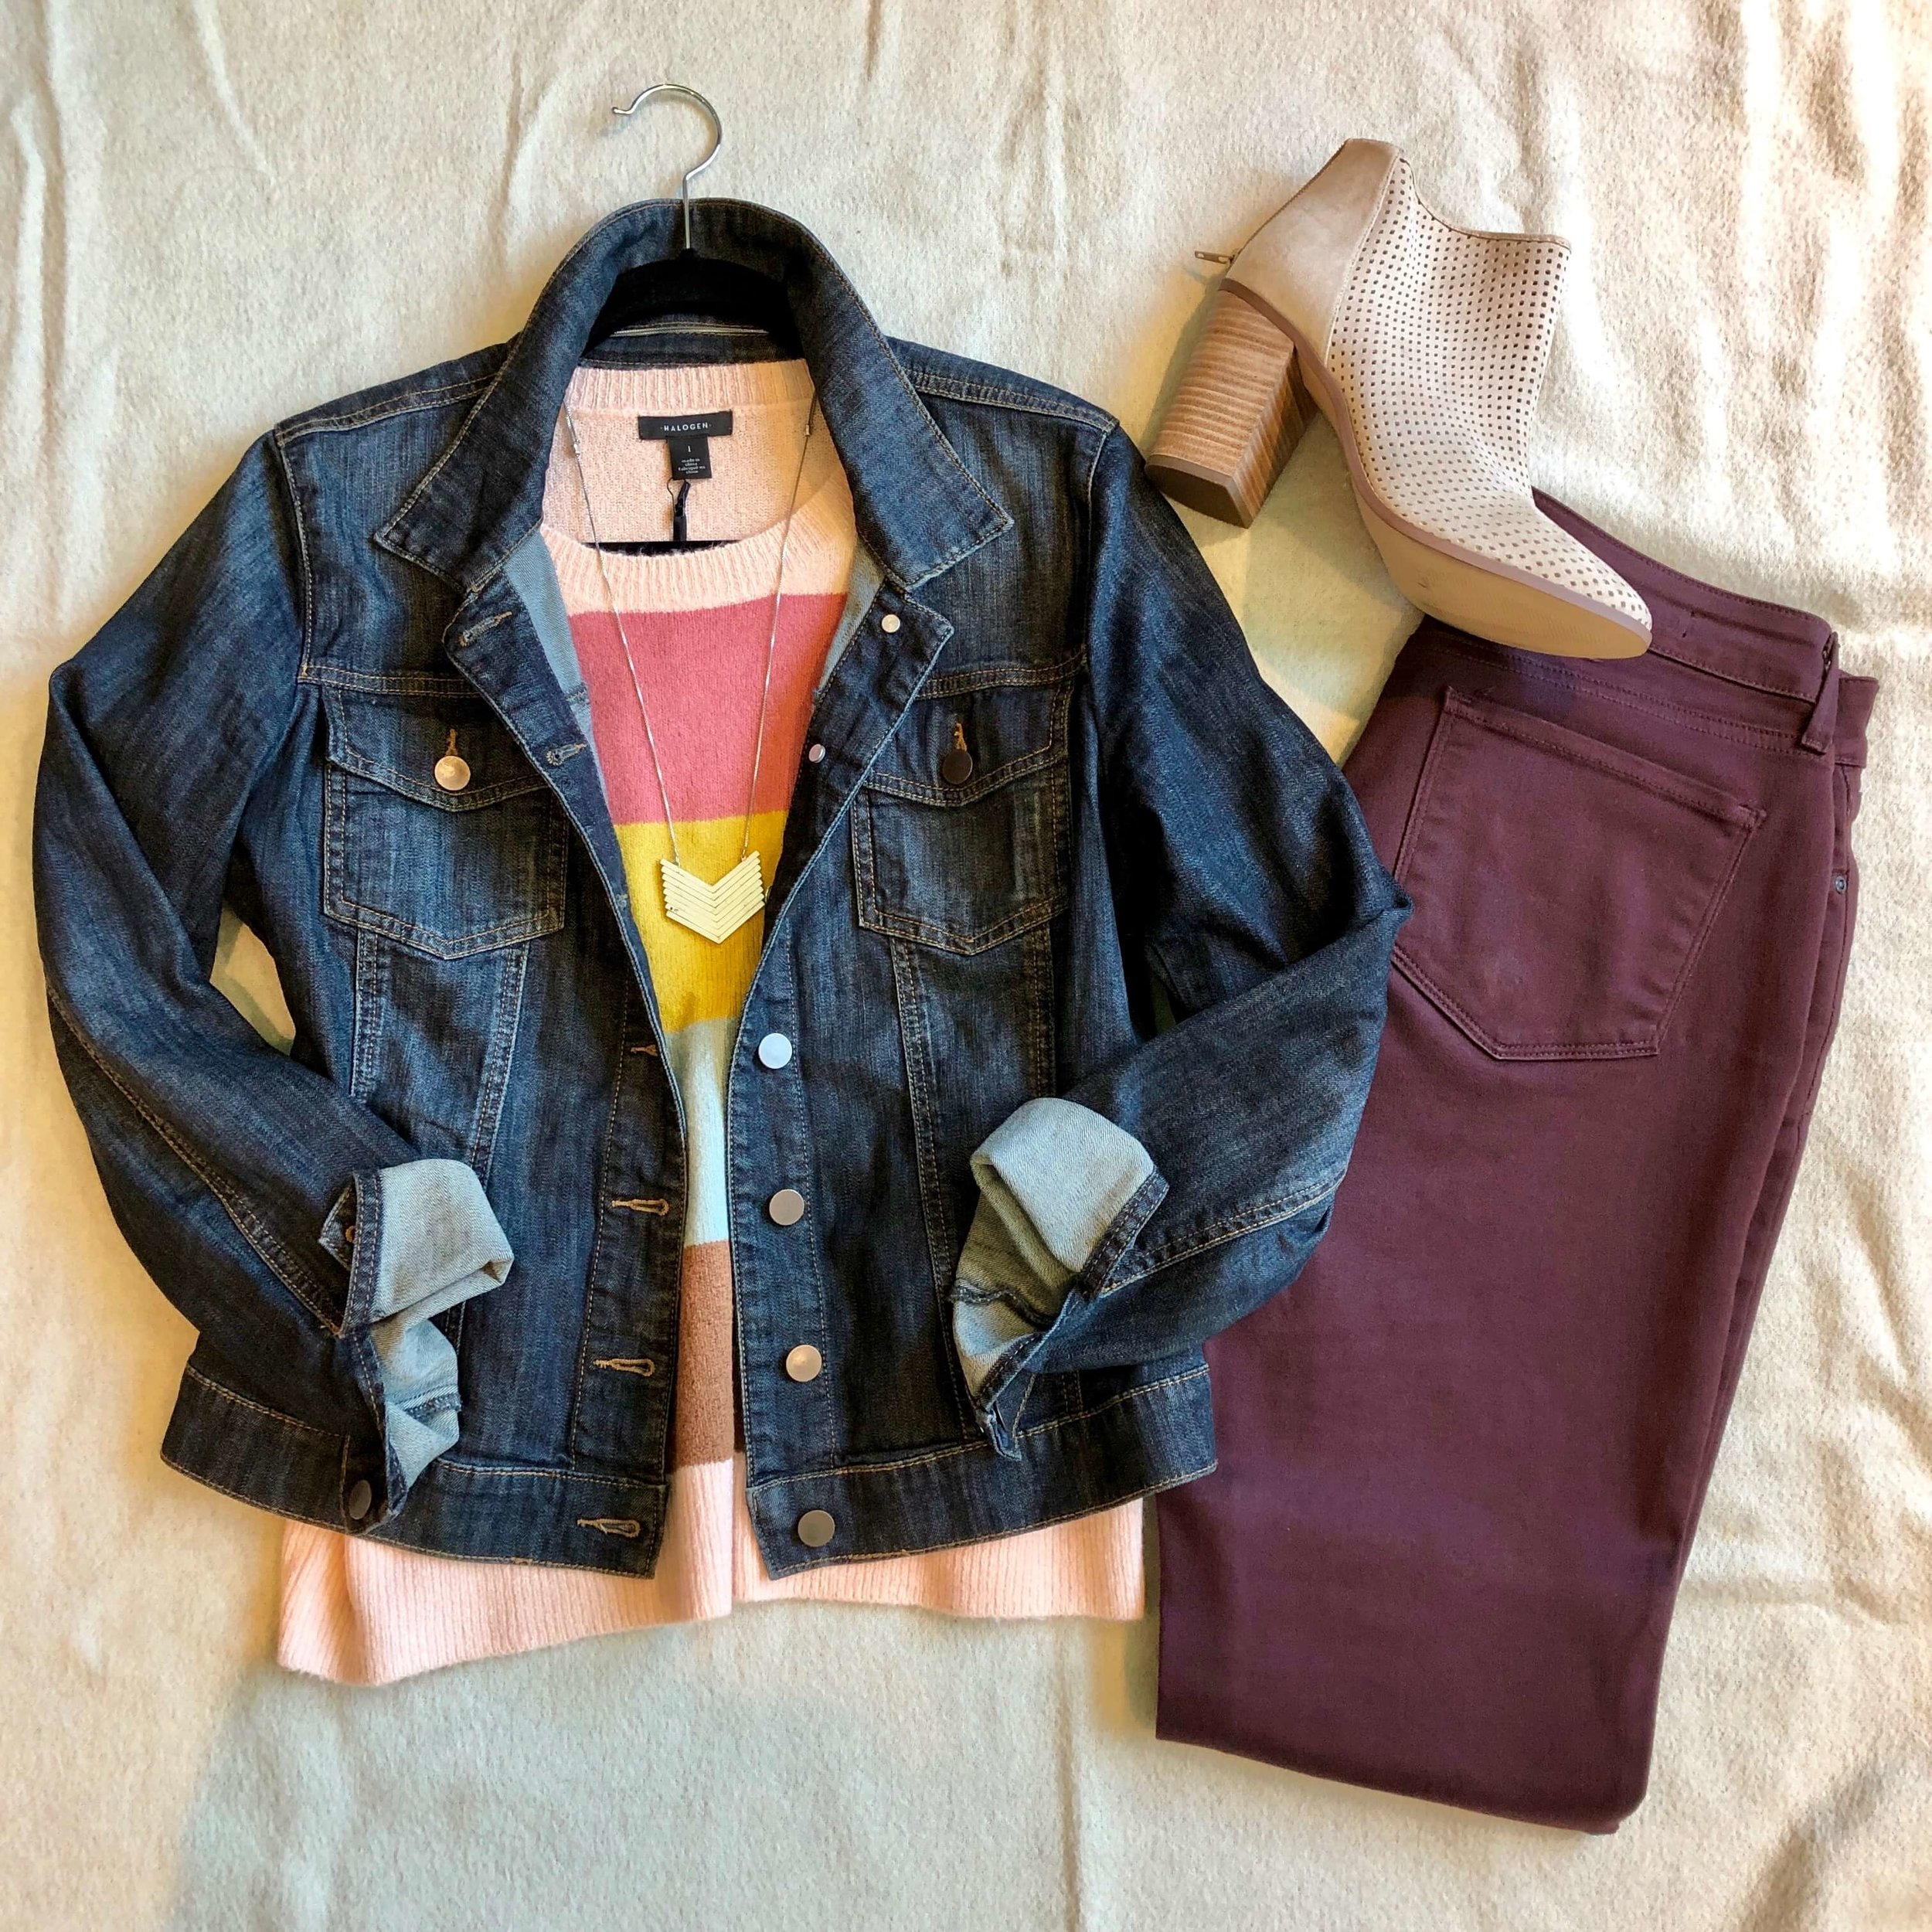 Even when you want to feel cozy at the office, you can embrace color in a pink and blush based sweater and burgundy jeans.